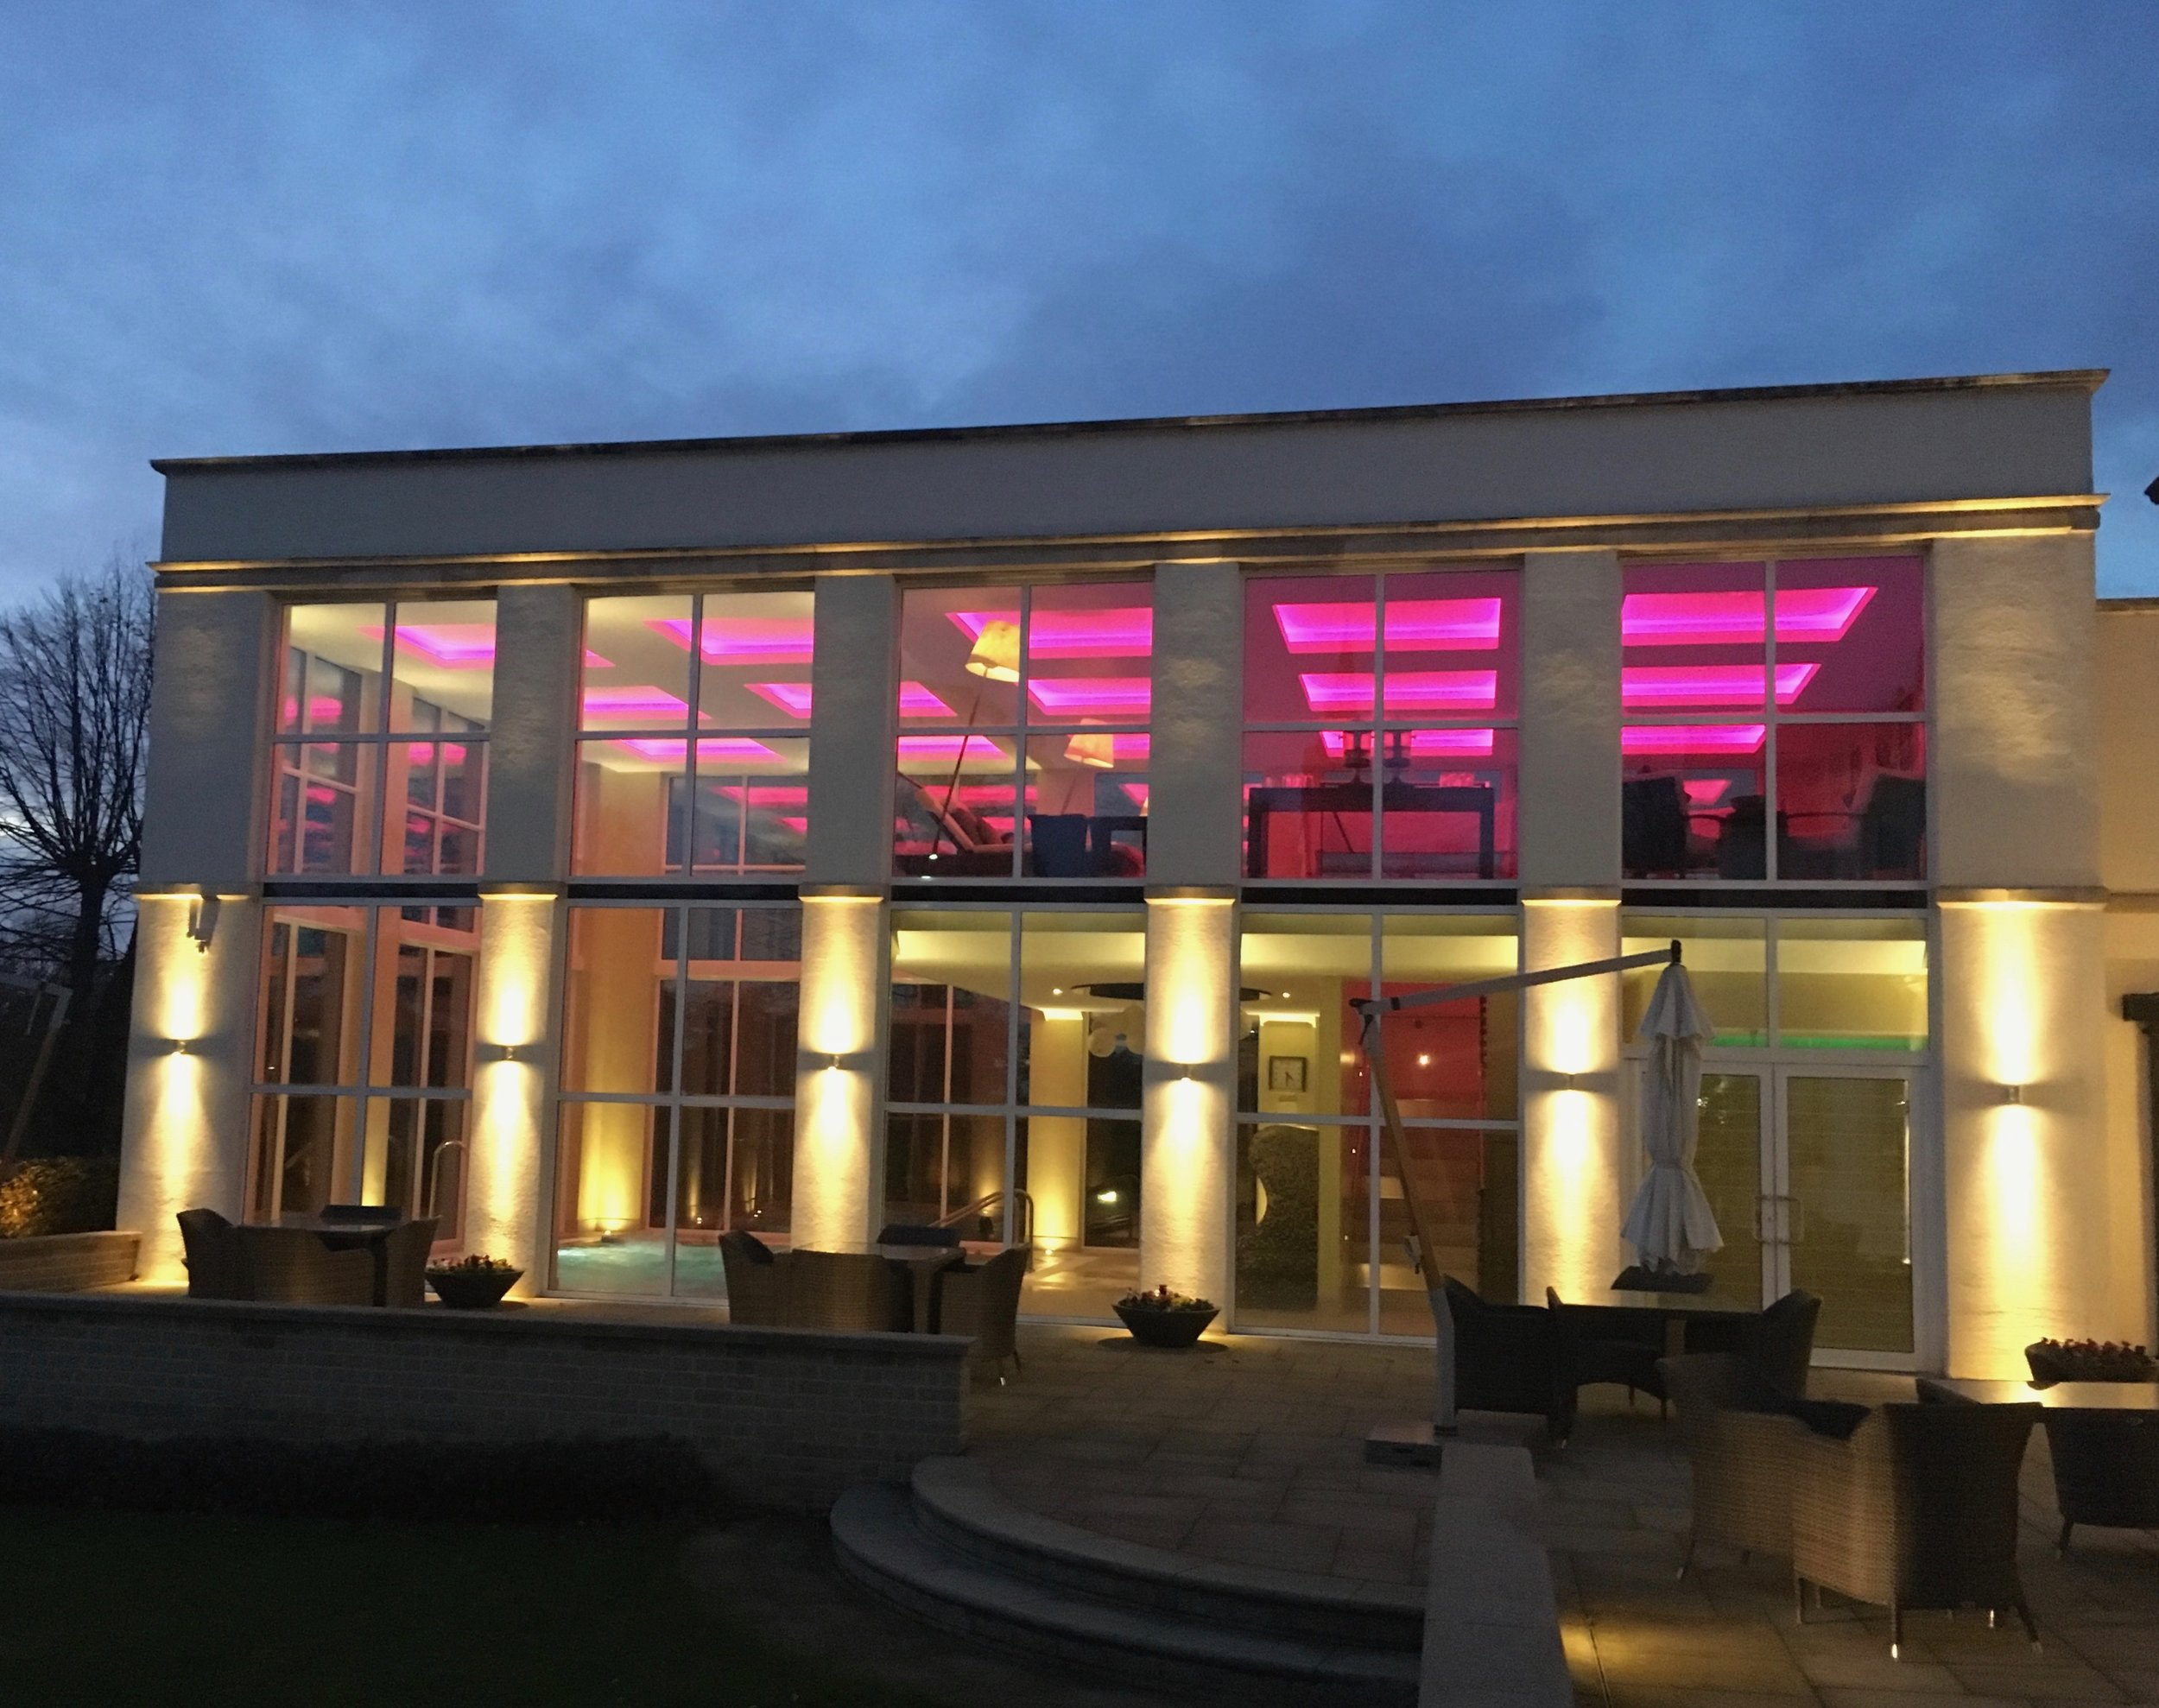 The Spa at Bedford Lodge Hotel, lit up at night